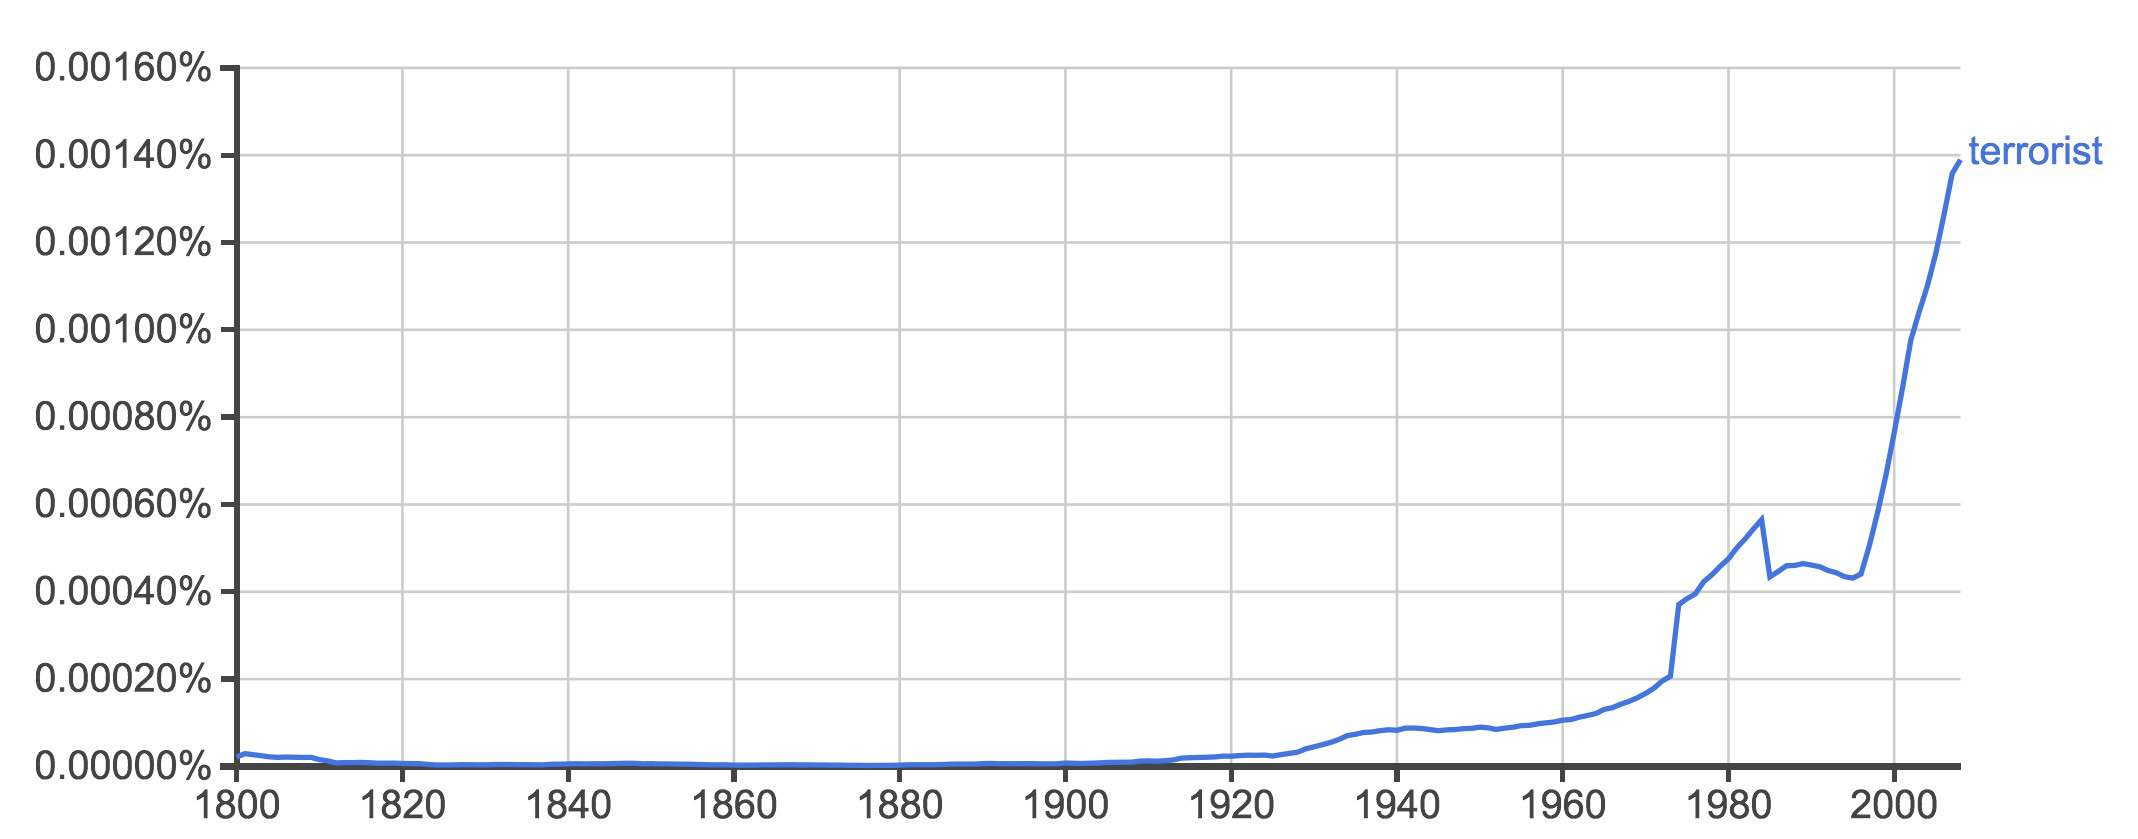 """""""Terrorist"""" in English texts dating from 1800 to 2008: Image via Google Books Ngram viewer"""